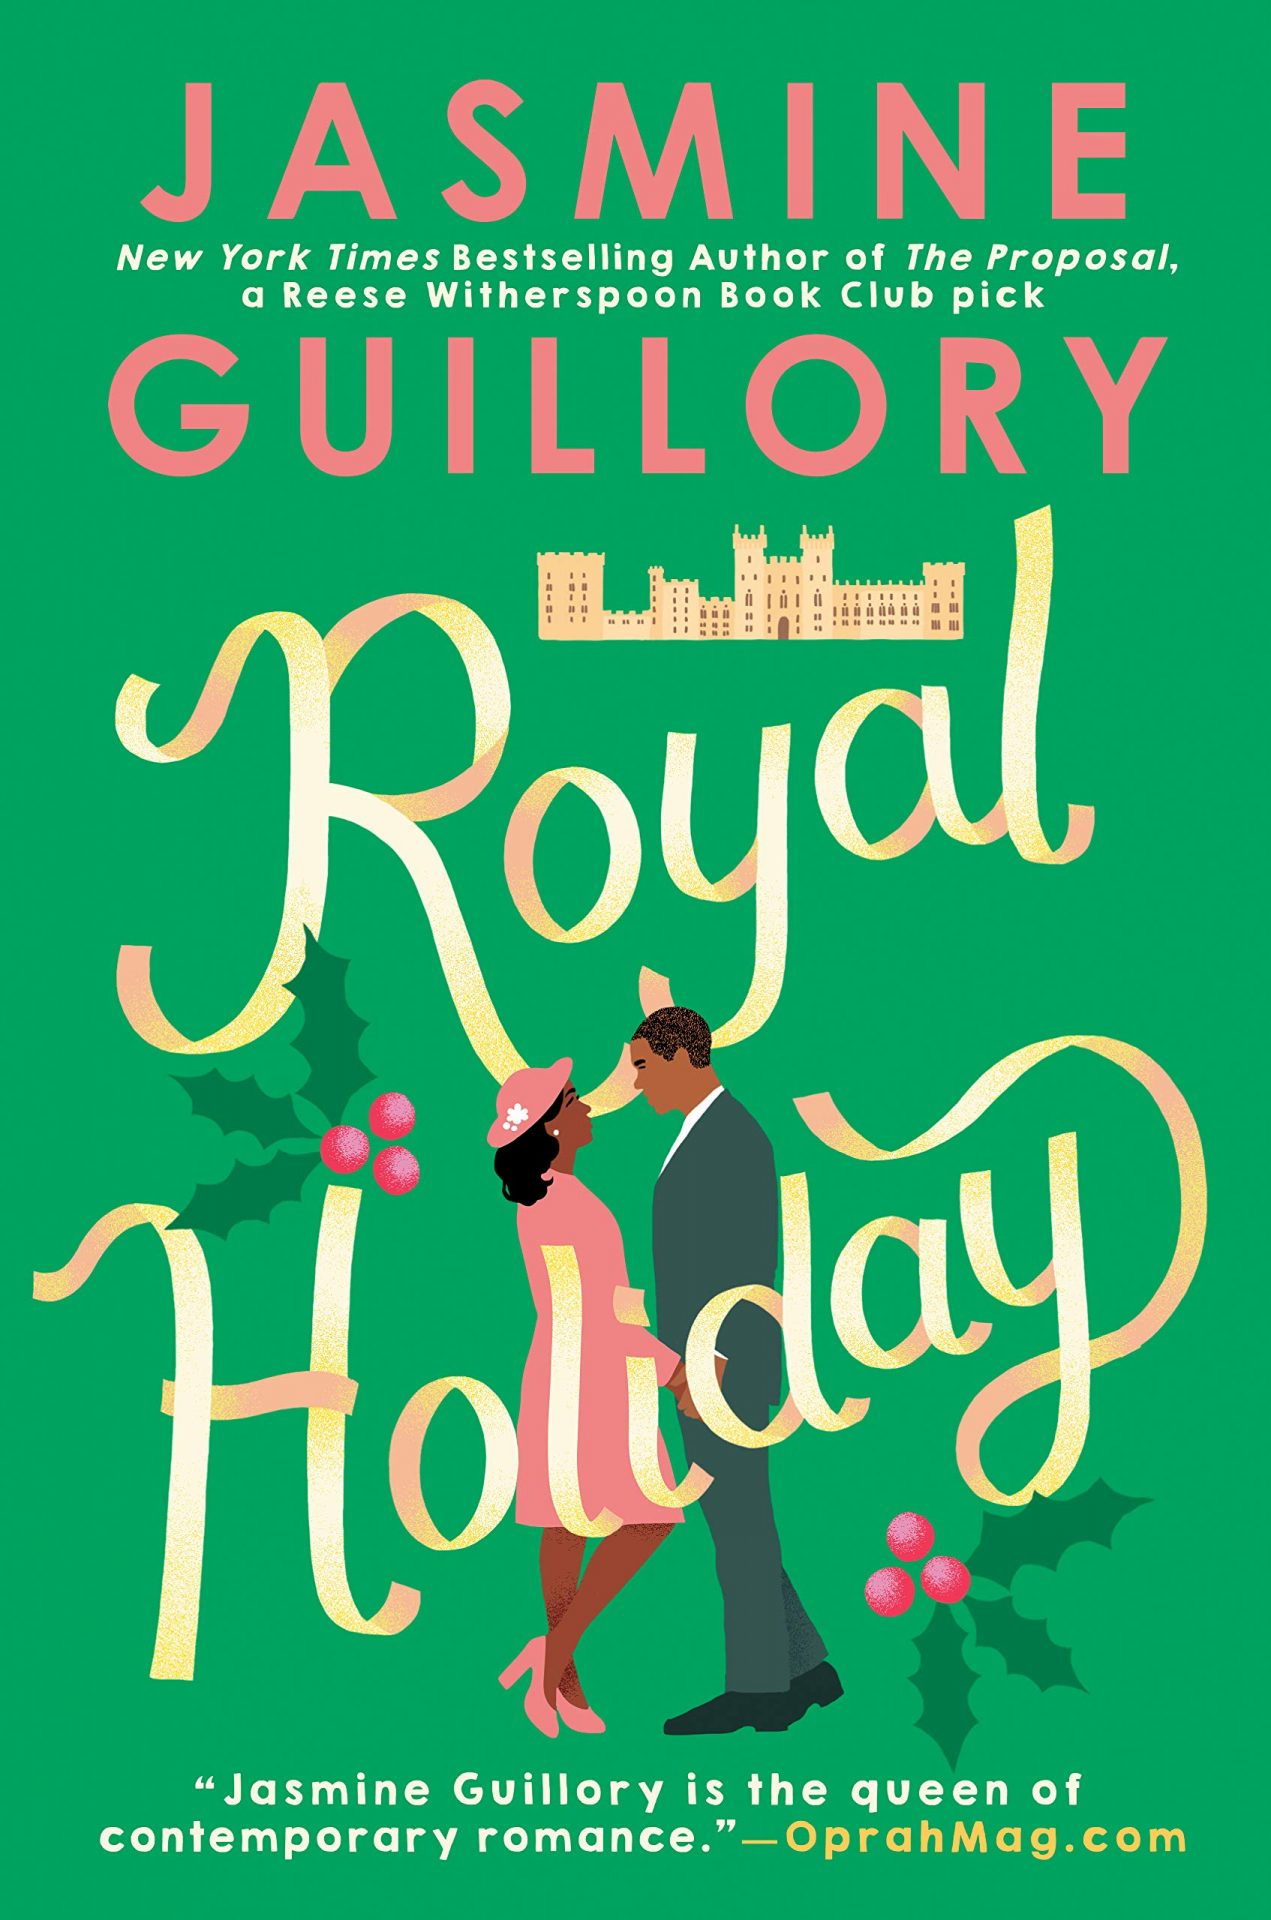 The cover for the royal holiday shows an illustration of a couple about to kiss under the title of the book